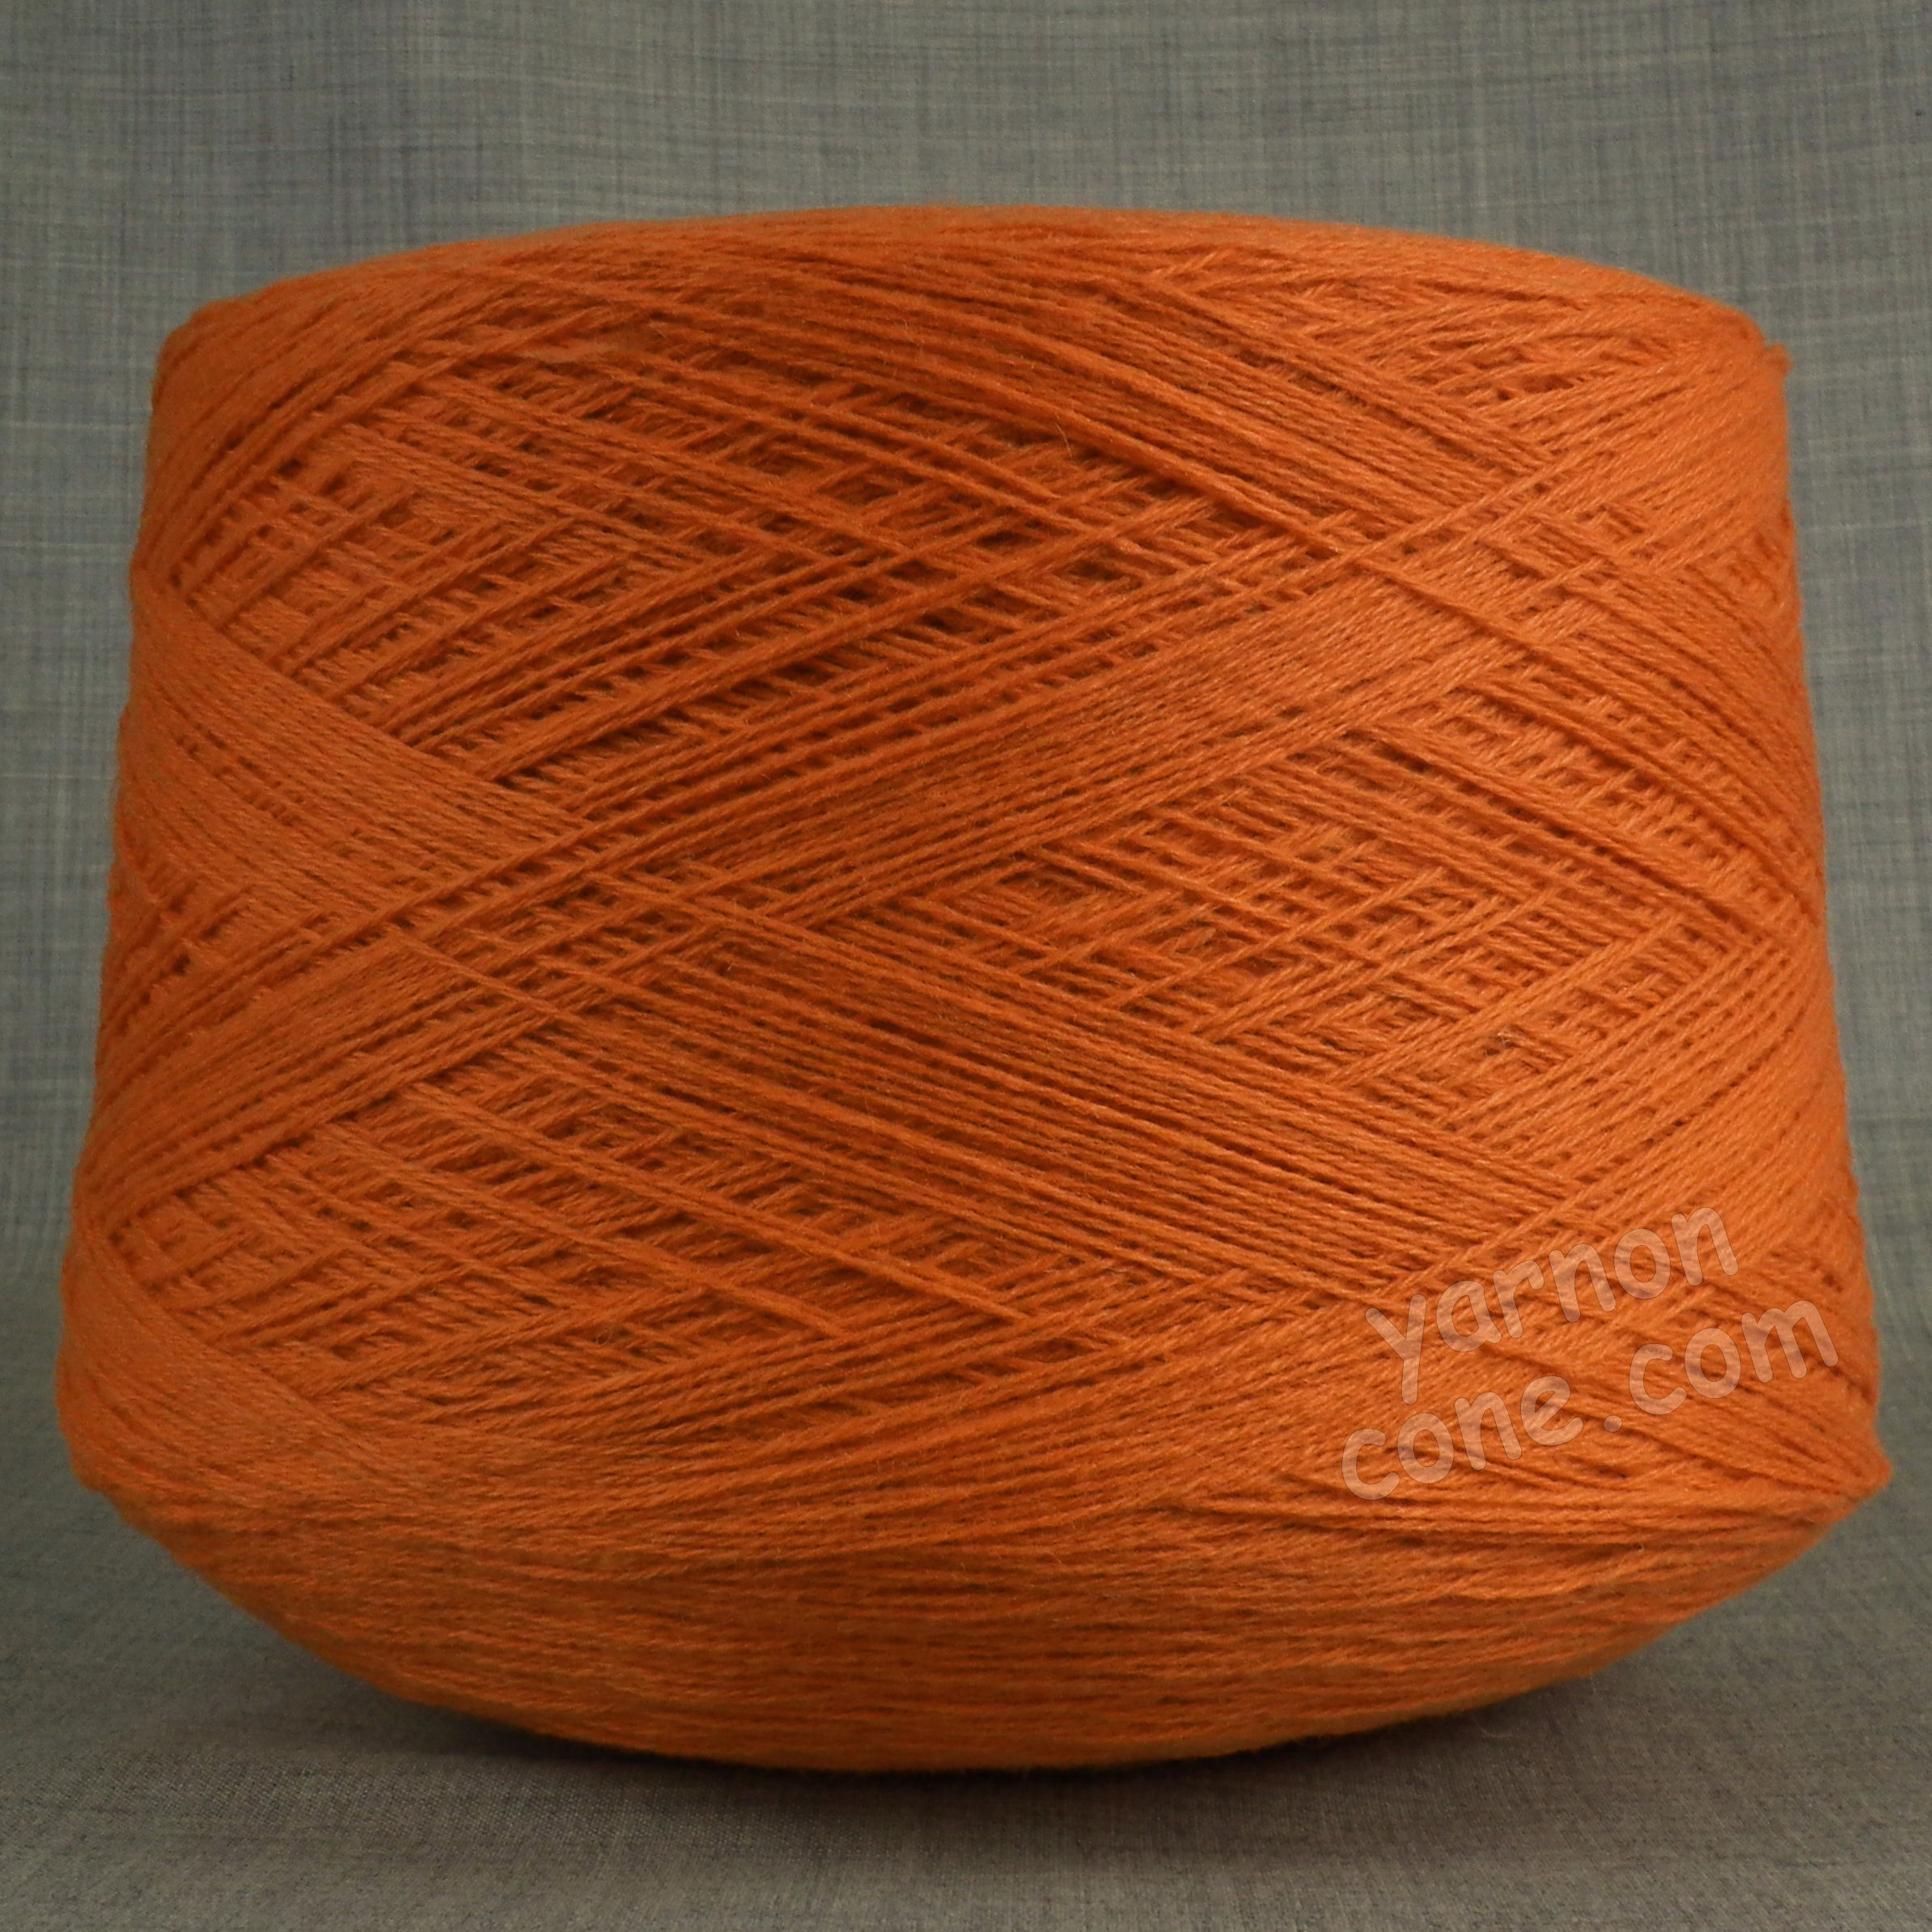 natural fantasy extrageelong geelong merino wool pure italian pomo orange 3 4 ply knitting yarn on cone